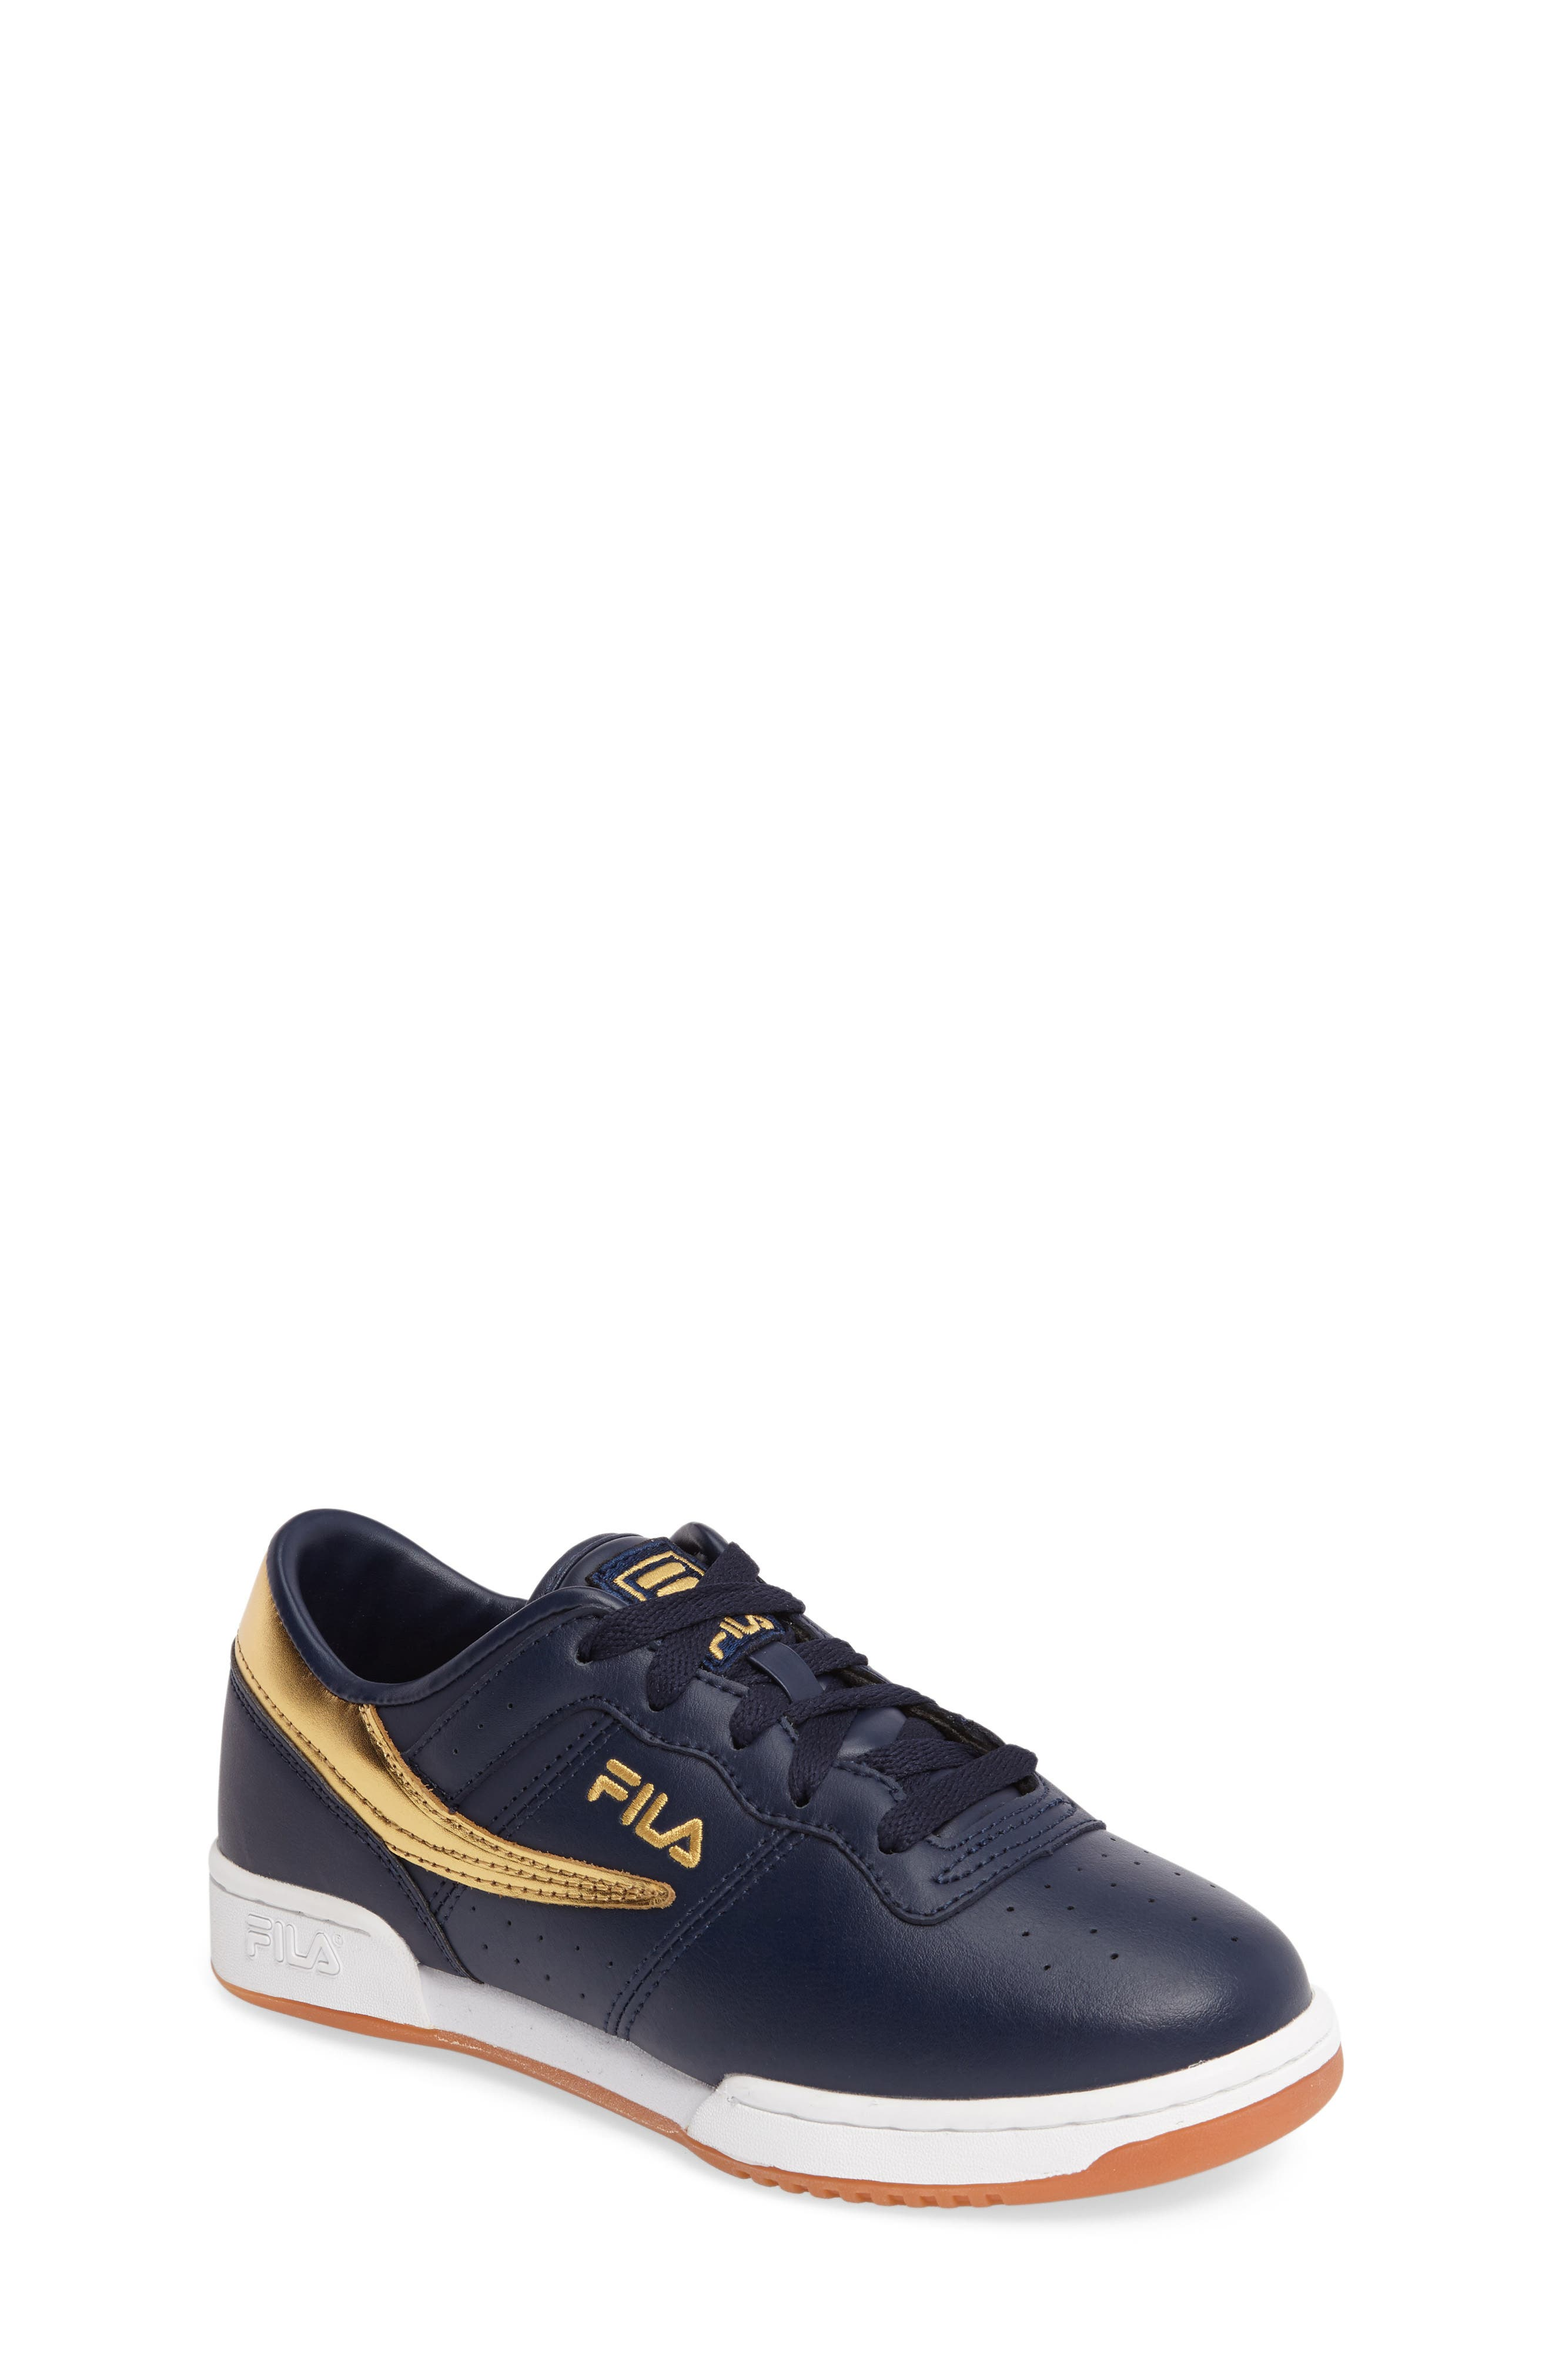 Heritage Sneaker,                             Main thumbnail 1, color,                             Navy/ Gold Faux Leather